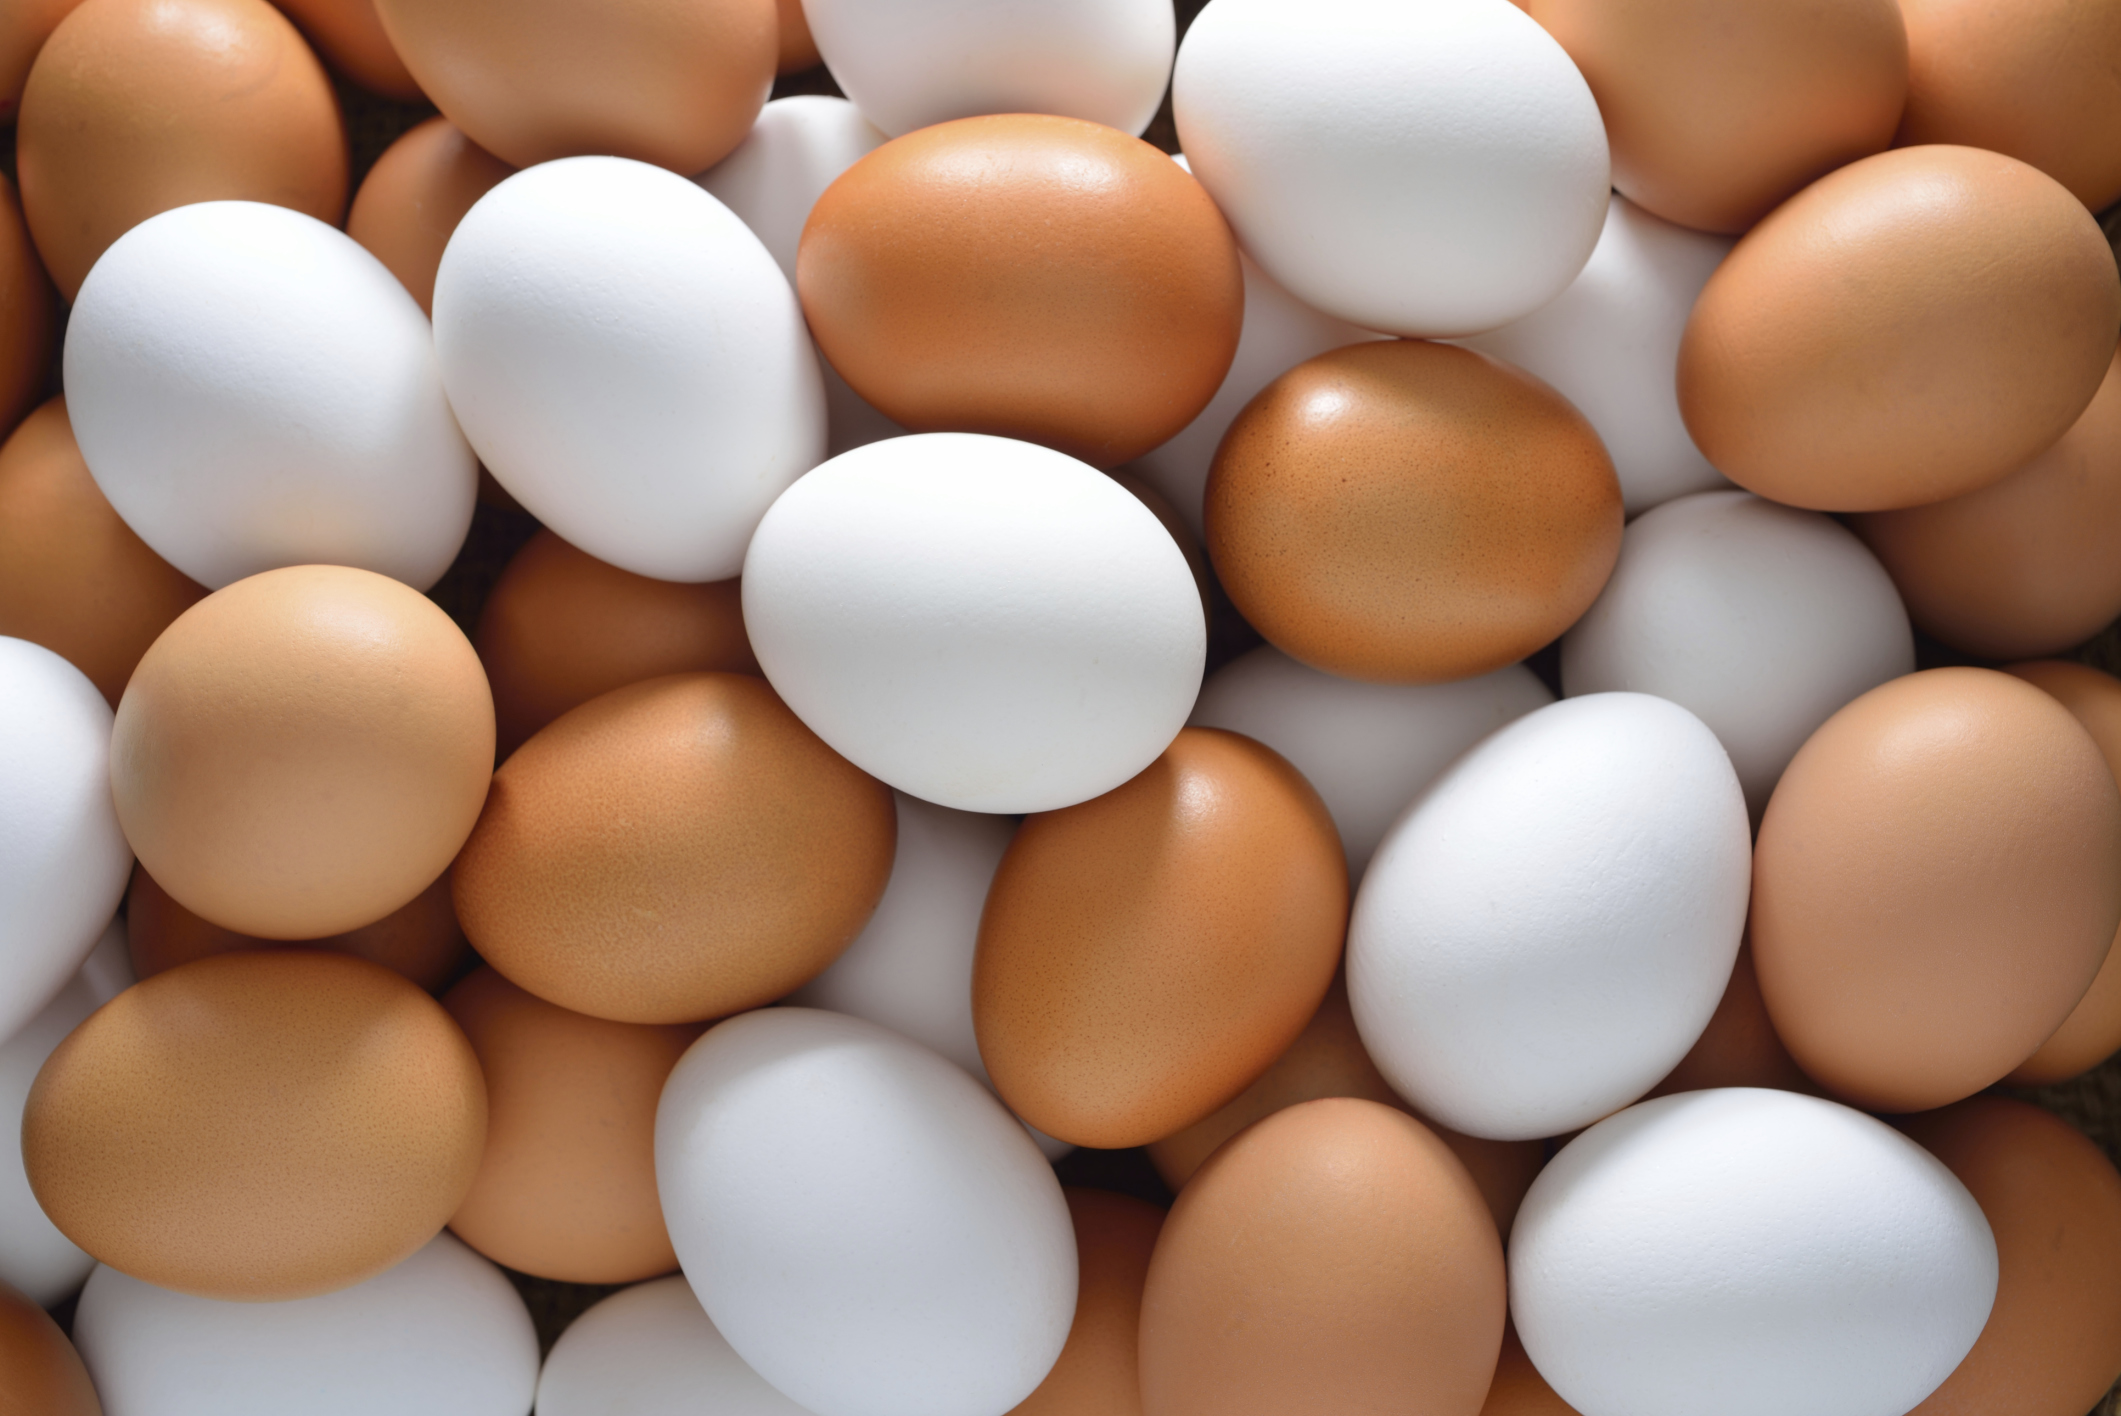 Do Eggs Increase Your Risk of Developing Heart Disease?